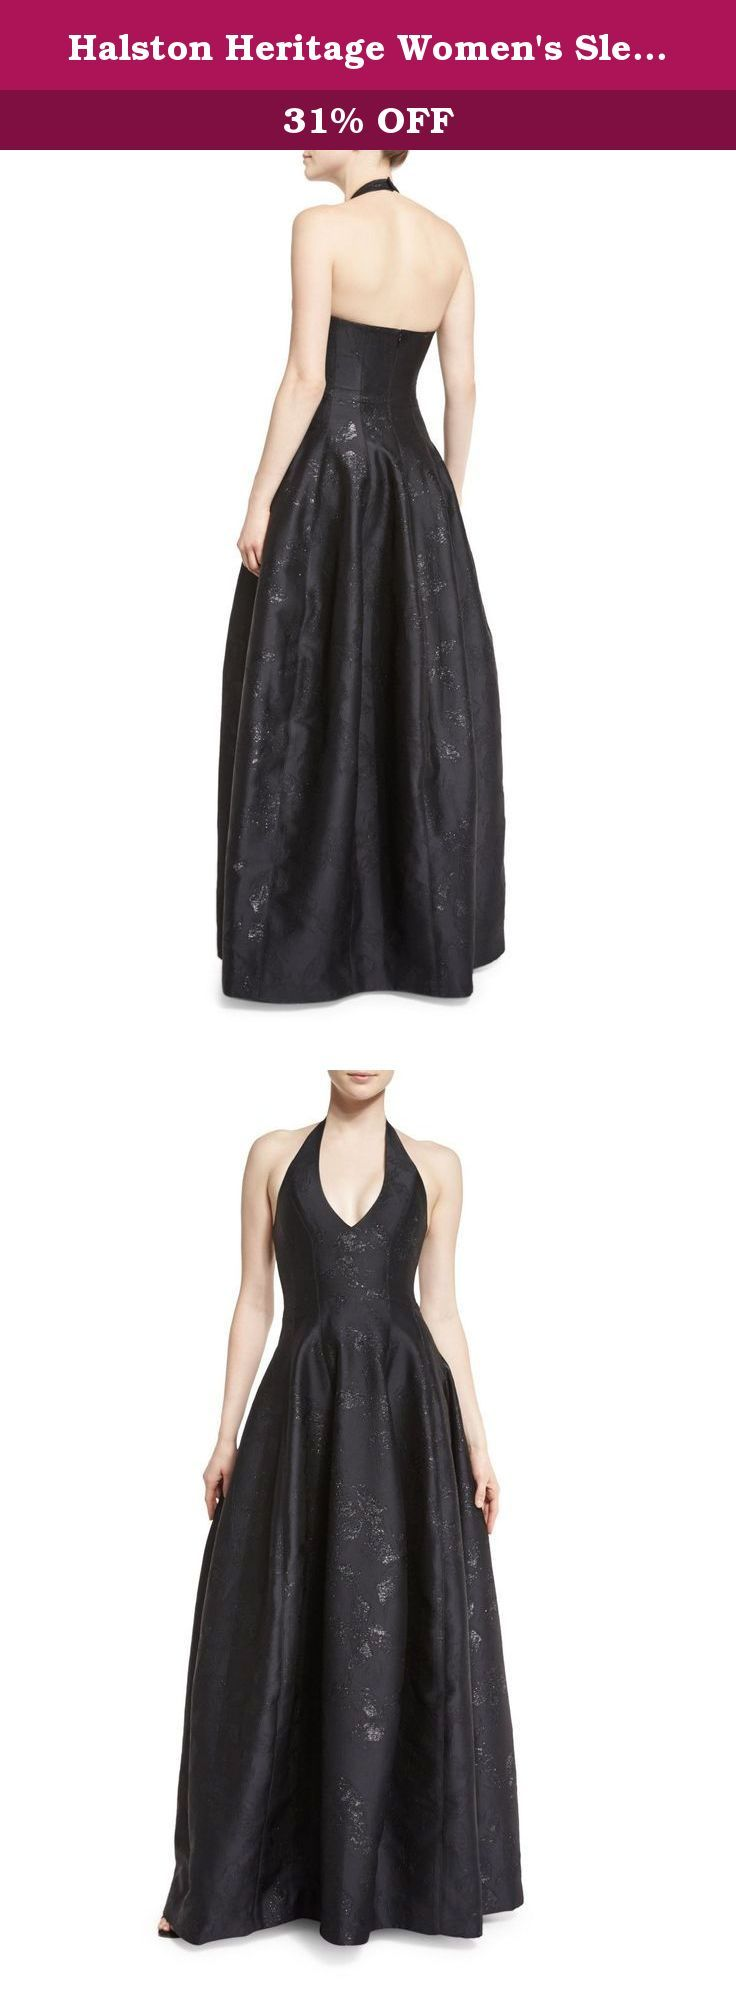 Halston Heritage Women's Sleeveless Halter Jacquard Gown 12 Black. Sleeveless gown with a halter neckline and a fitted bodice.